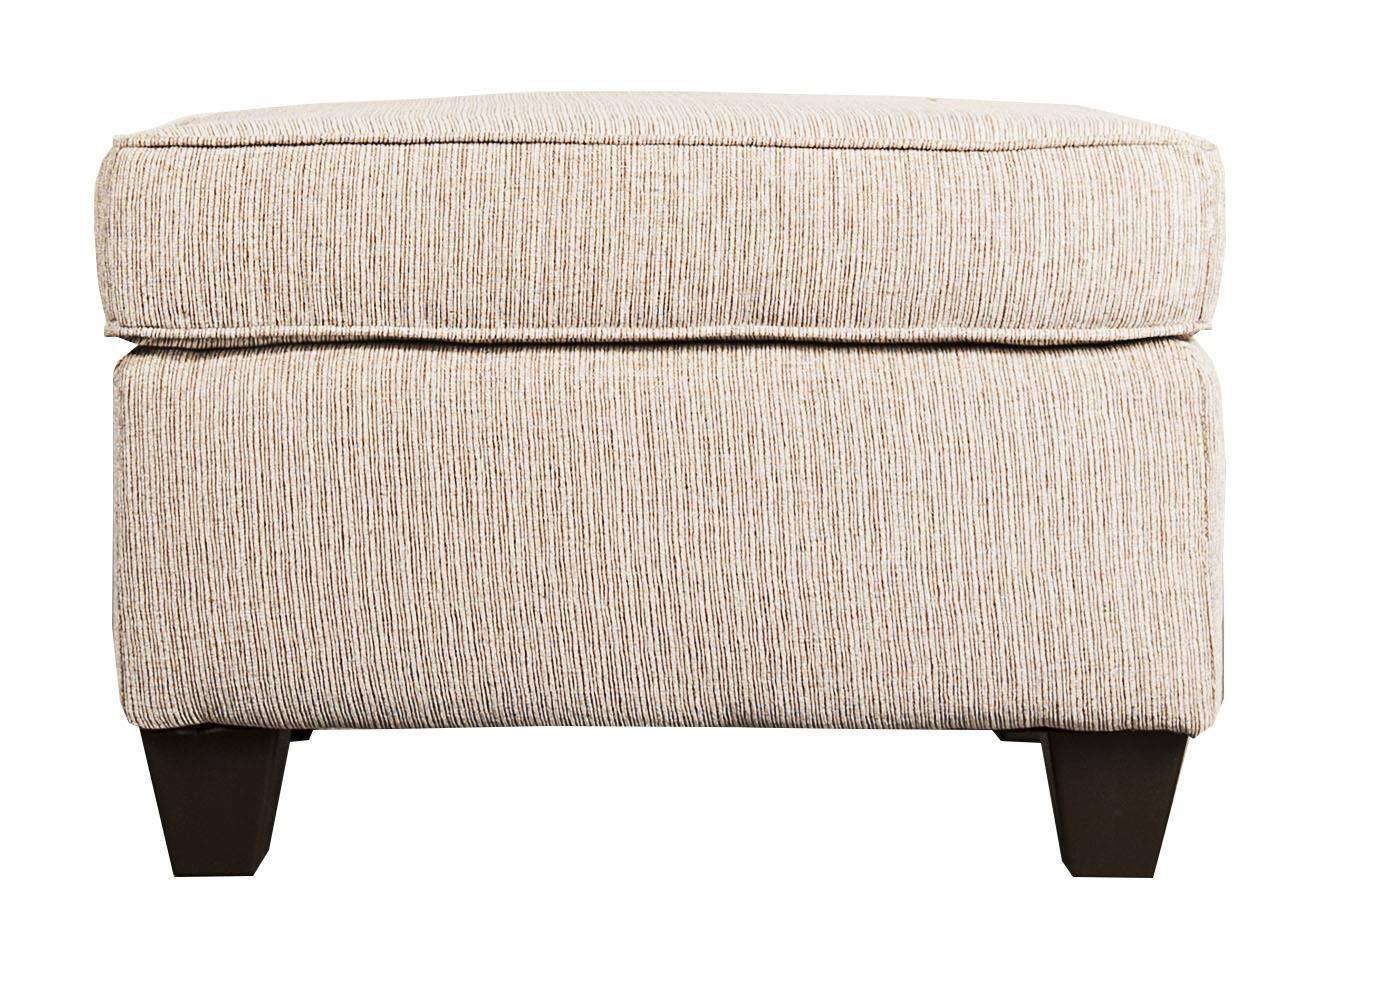 Morris Home Furnishings Rexanna Rexanna Ottoman - Item Number: 697367790